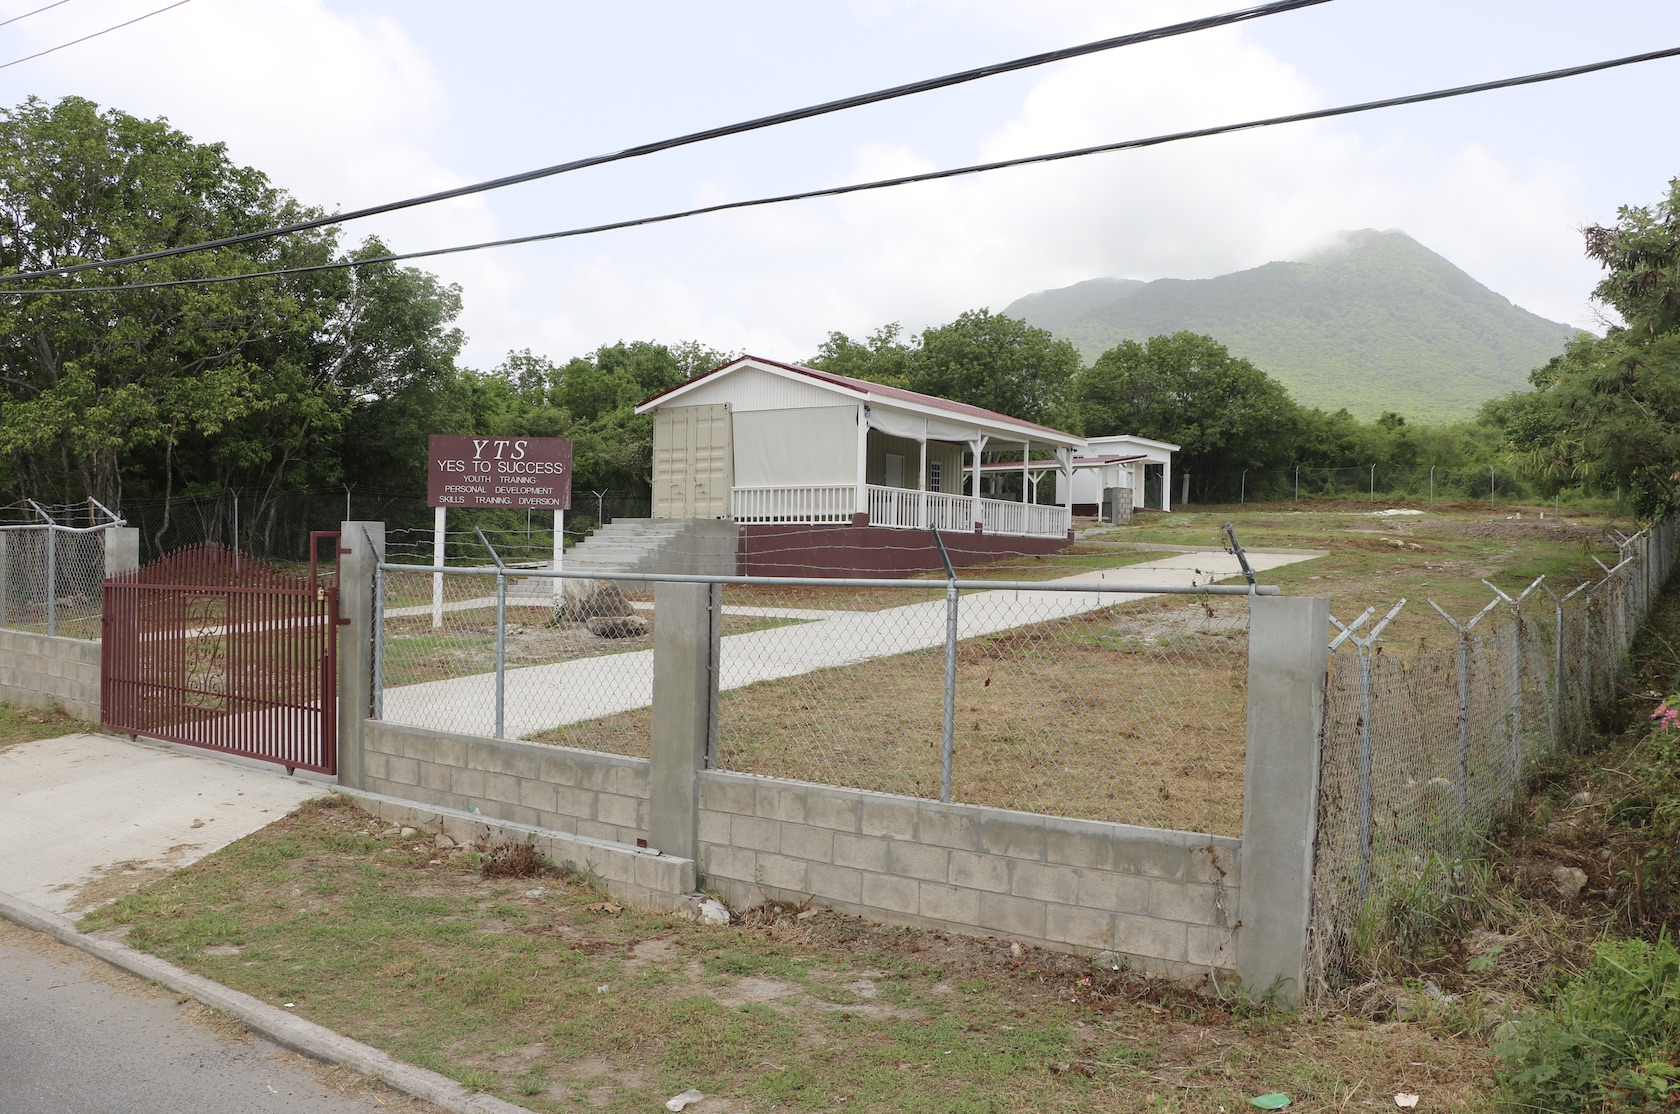 The Yes To Success compound at Pinney's Estate on August 28, 2020, which will be officially opened by the Ministry of Social Development in September